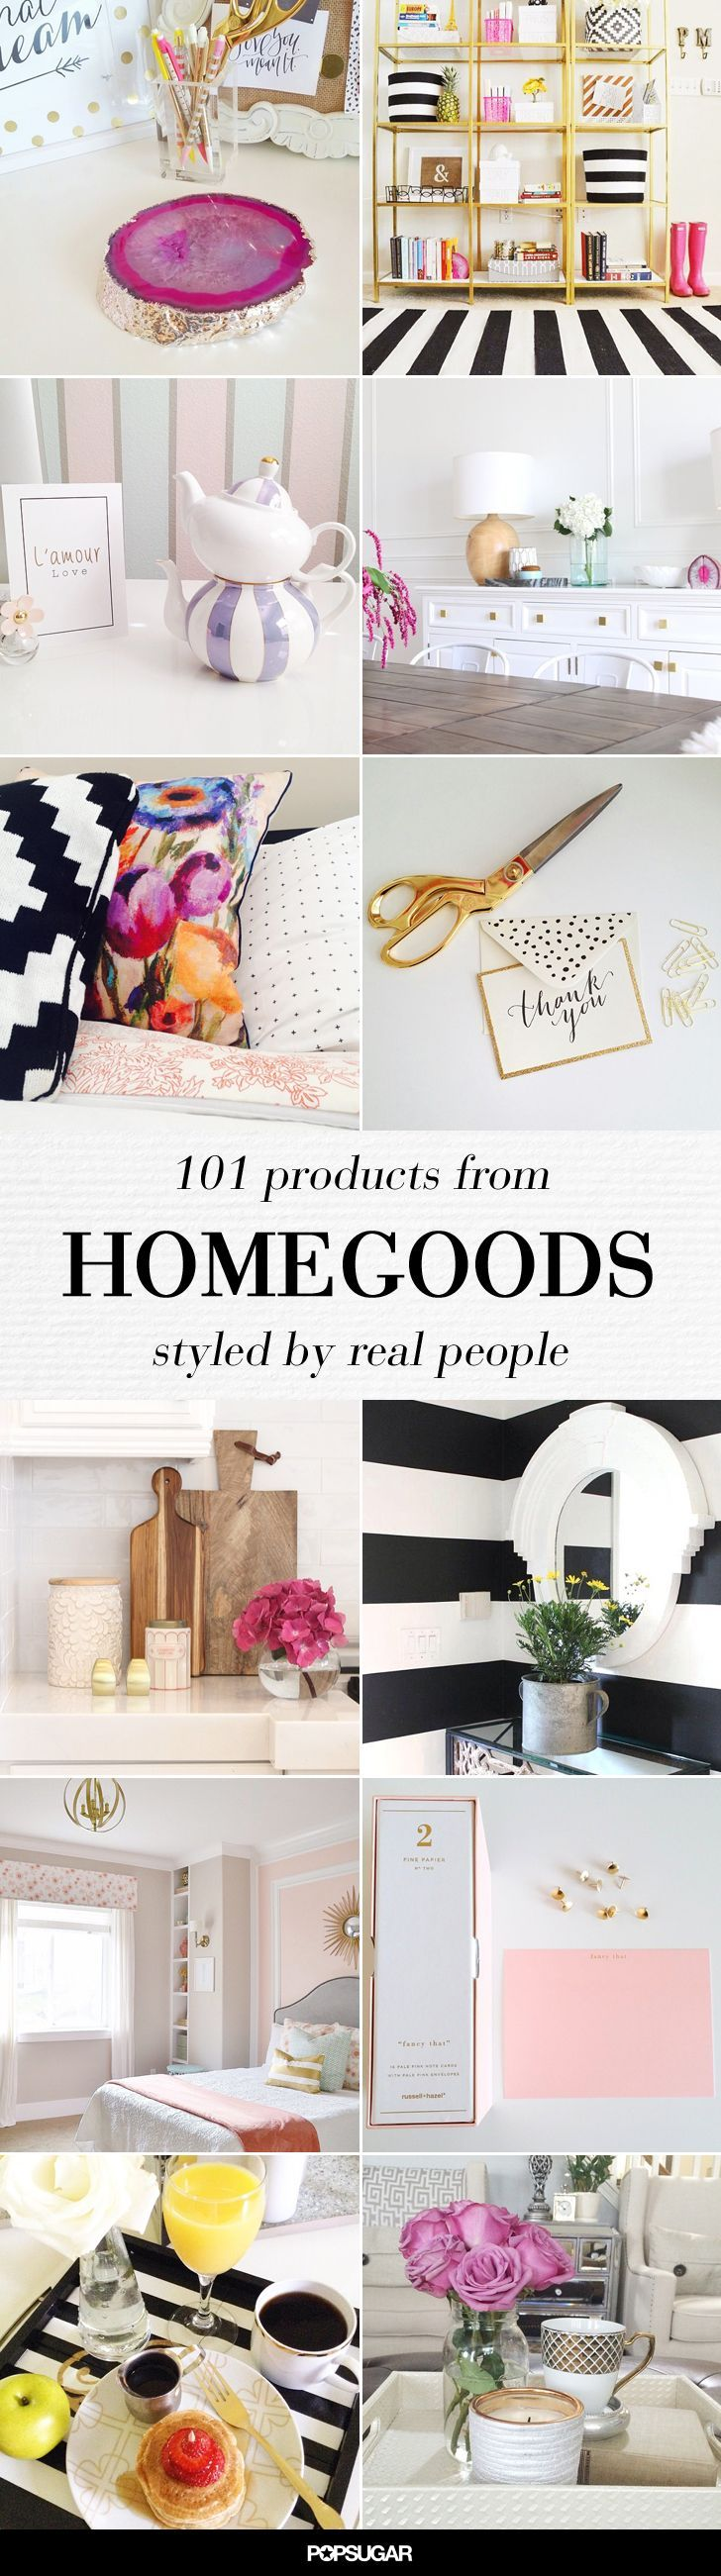 Home Decor Ideas Youull Want to Pin Immediately  Schöne häuser